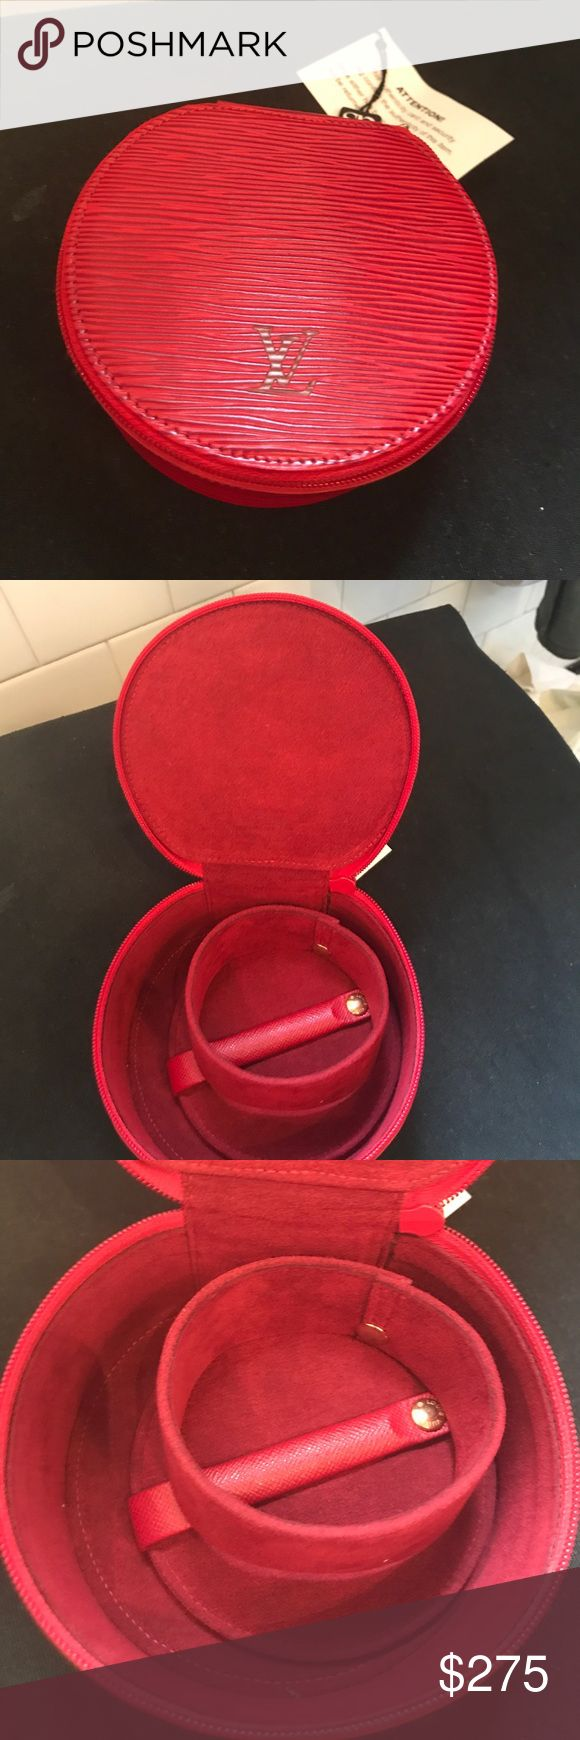 Louis Vuitton Red Epi Ecrin Bijoux Jewelry Case Authentic Louis Vuitton watch and jewelry case. Red with textured outer. Zip around closure with red enamel LV zipper pull, detachable watch holder and snapped pillow for necklaces and rings. Never used, still has authenticity card. Make me an offer! Louis Vuitton Bags Travel Bags